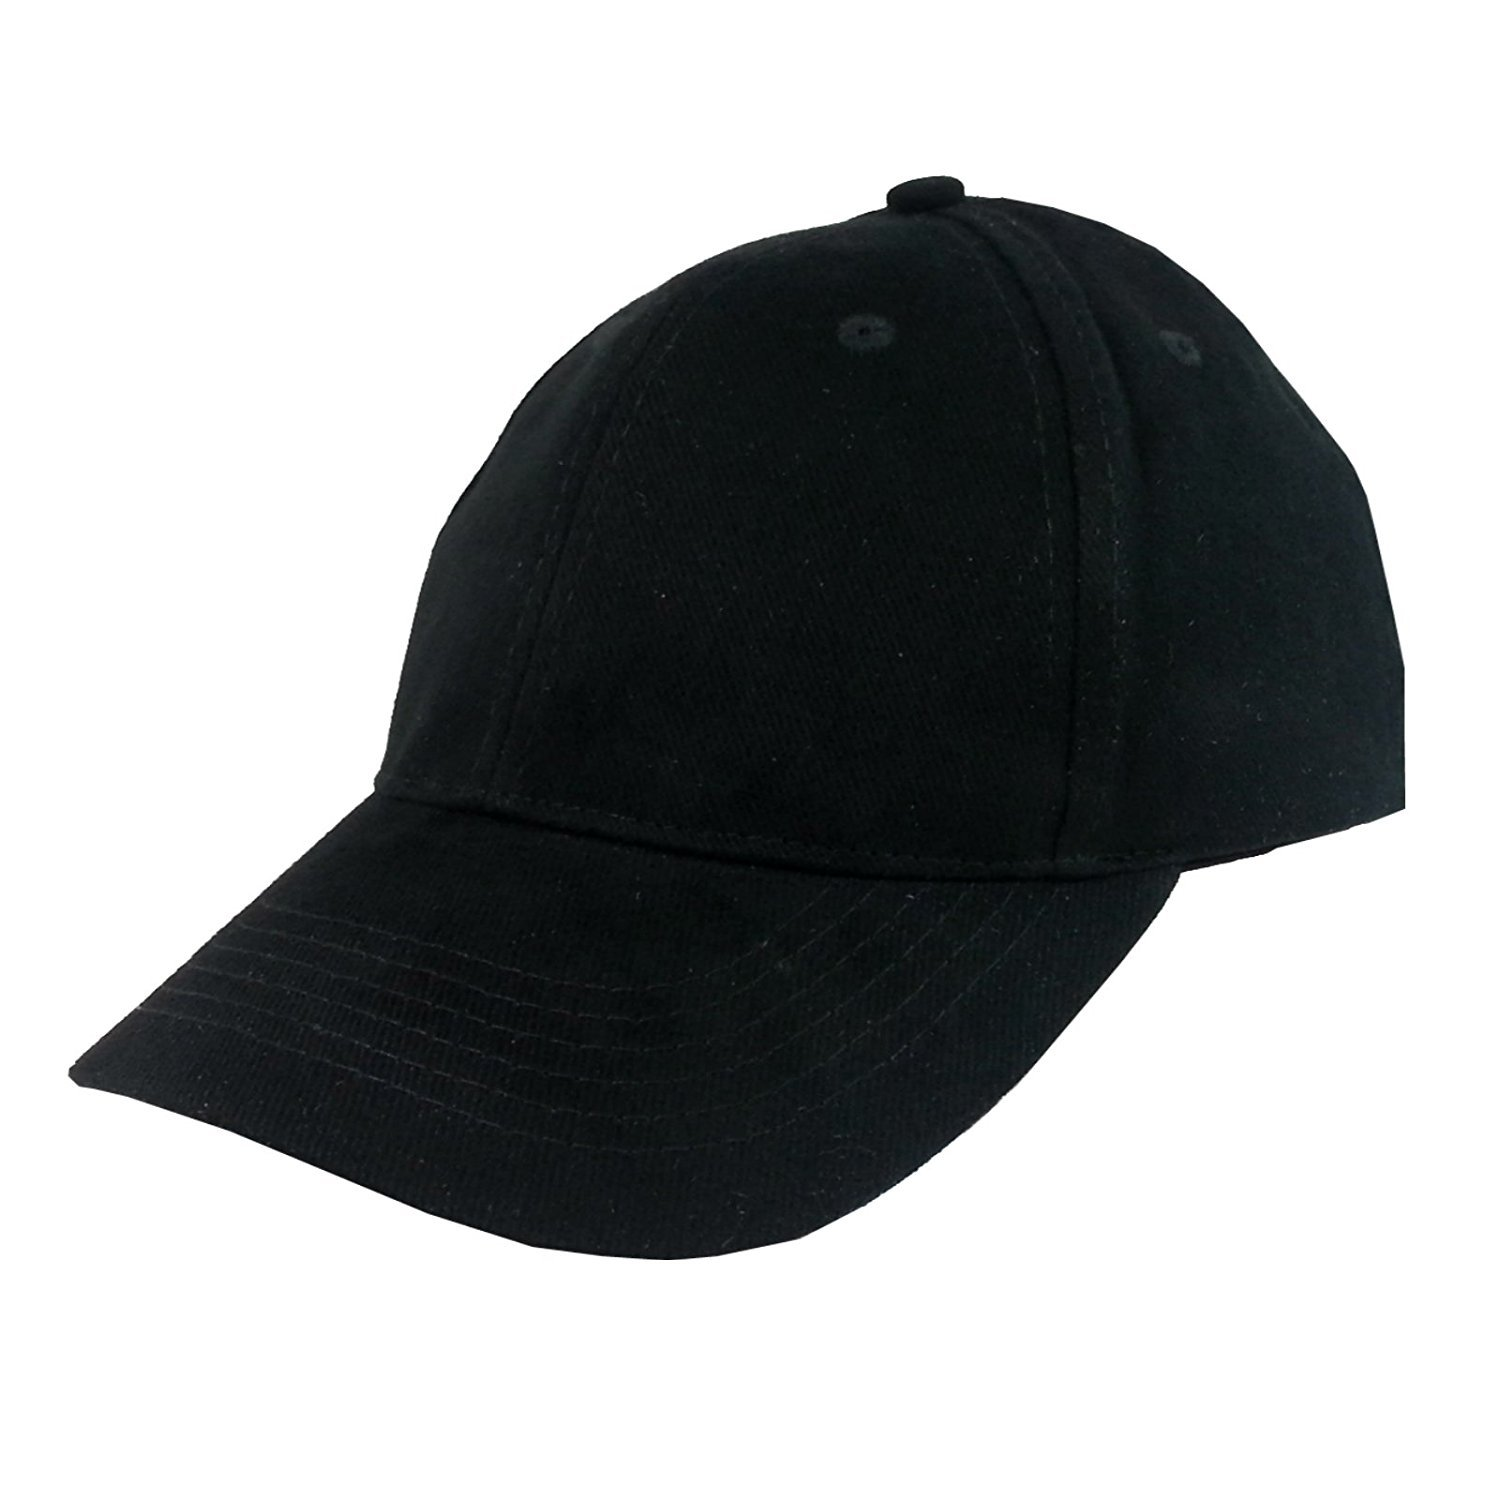 Wholesale Lot of 12 Baseball Cap in Black 100% Cotton by eeMore